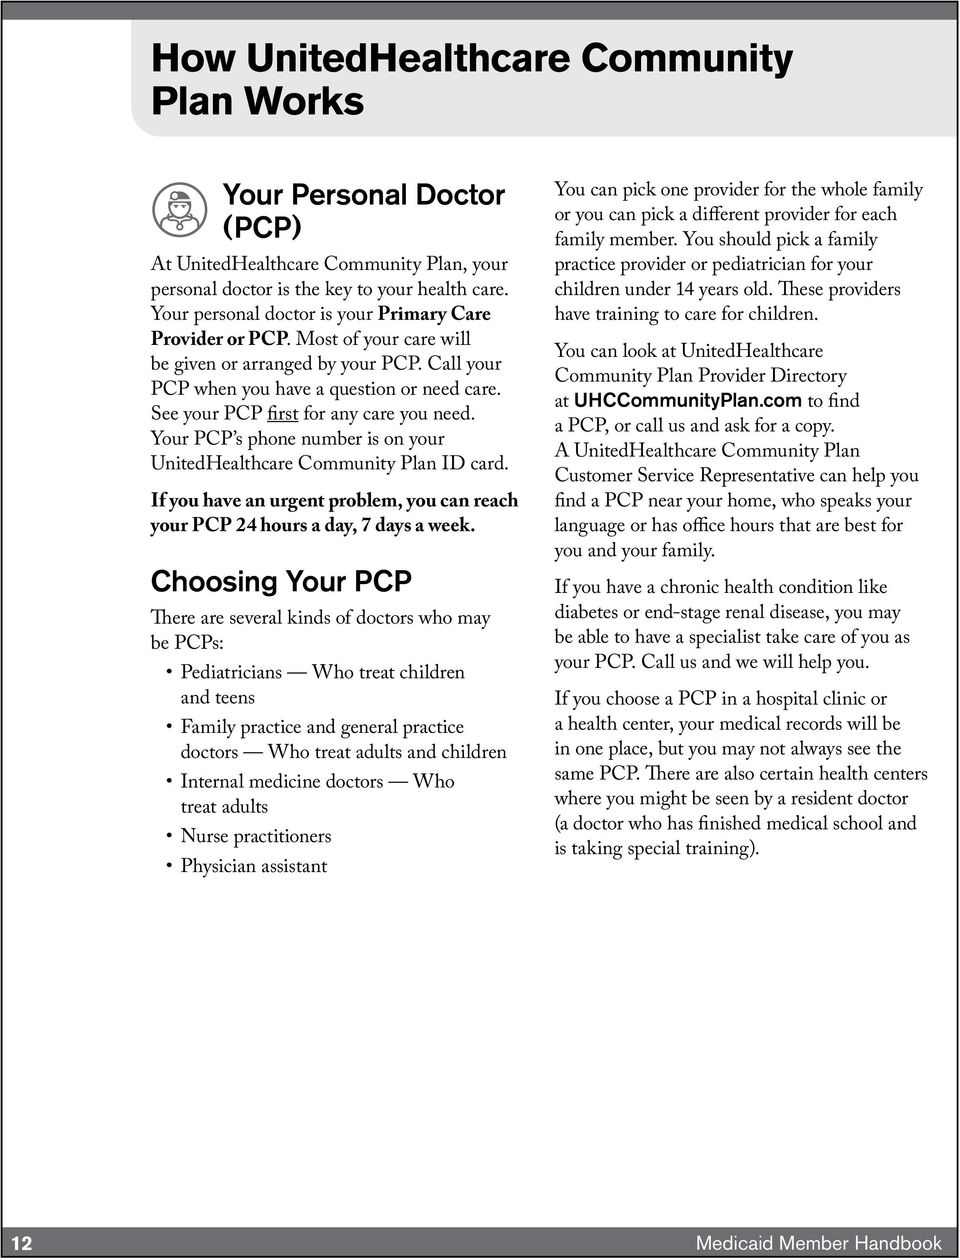 See your PCP first for any care you need. Your PCP s phone number is on your UnitedHealthcare Community Plan ID card.